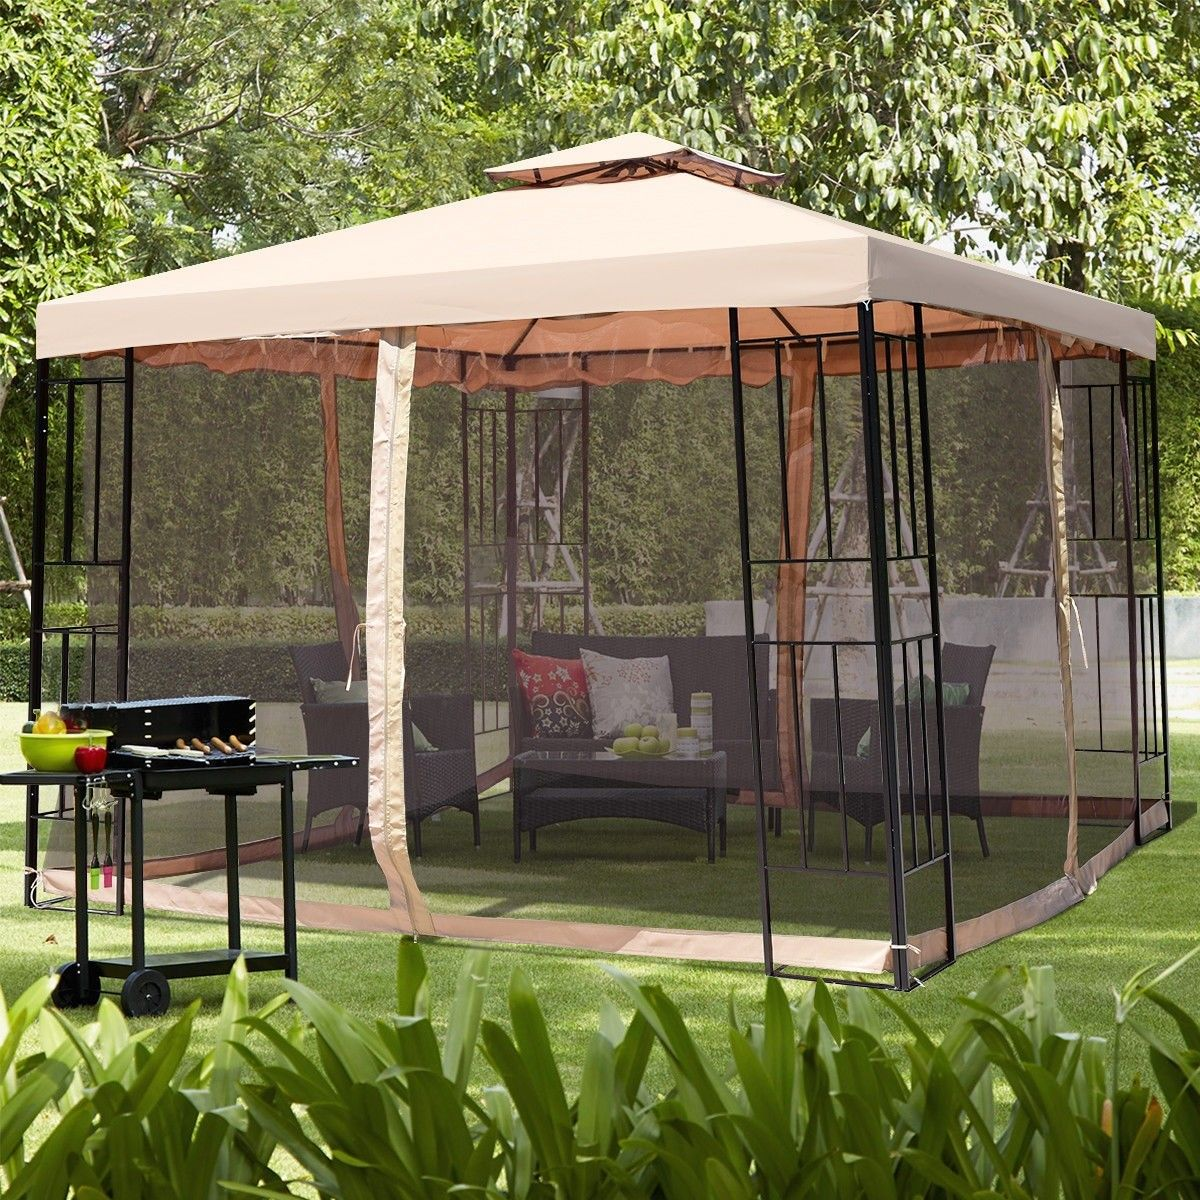 10 X 10 Ft 2 Tier Vented Metal Gazebo Canopy With Mosquito Netting Gazebo Canopy Gazebo Outdoor Gazebos